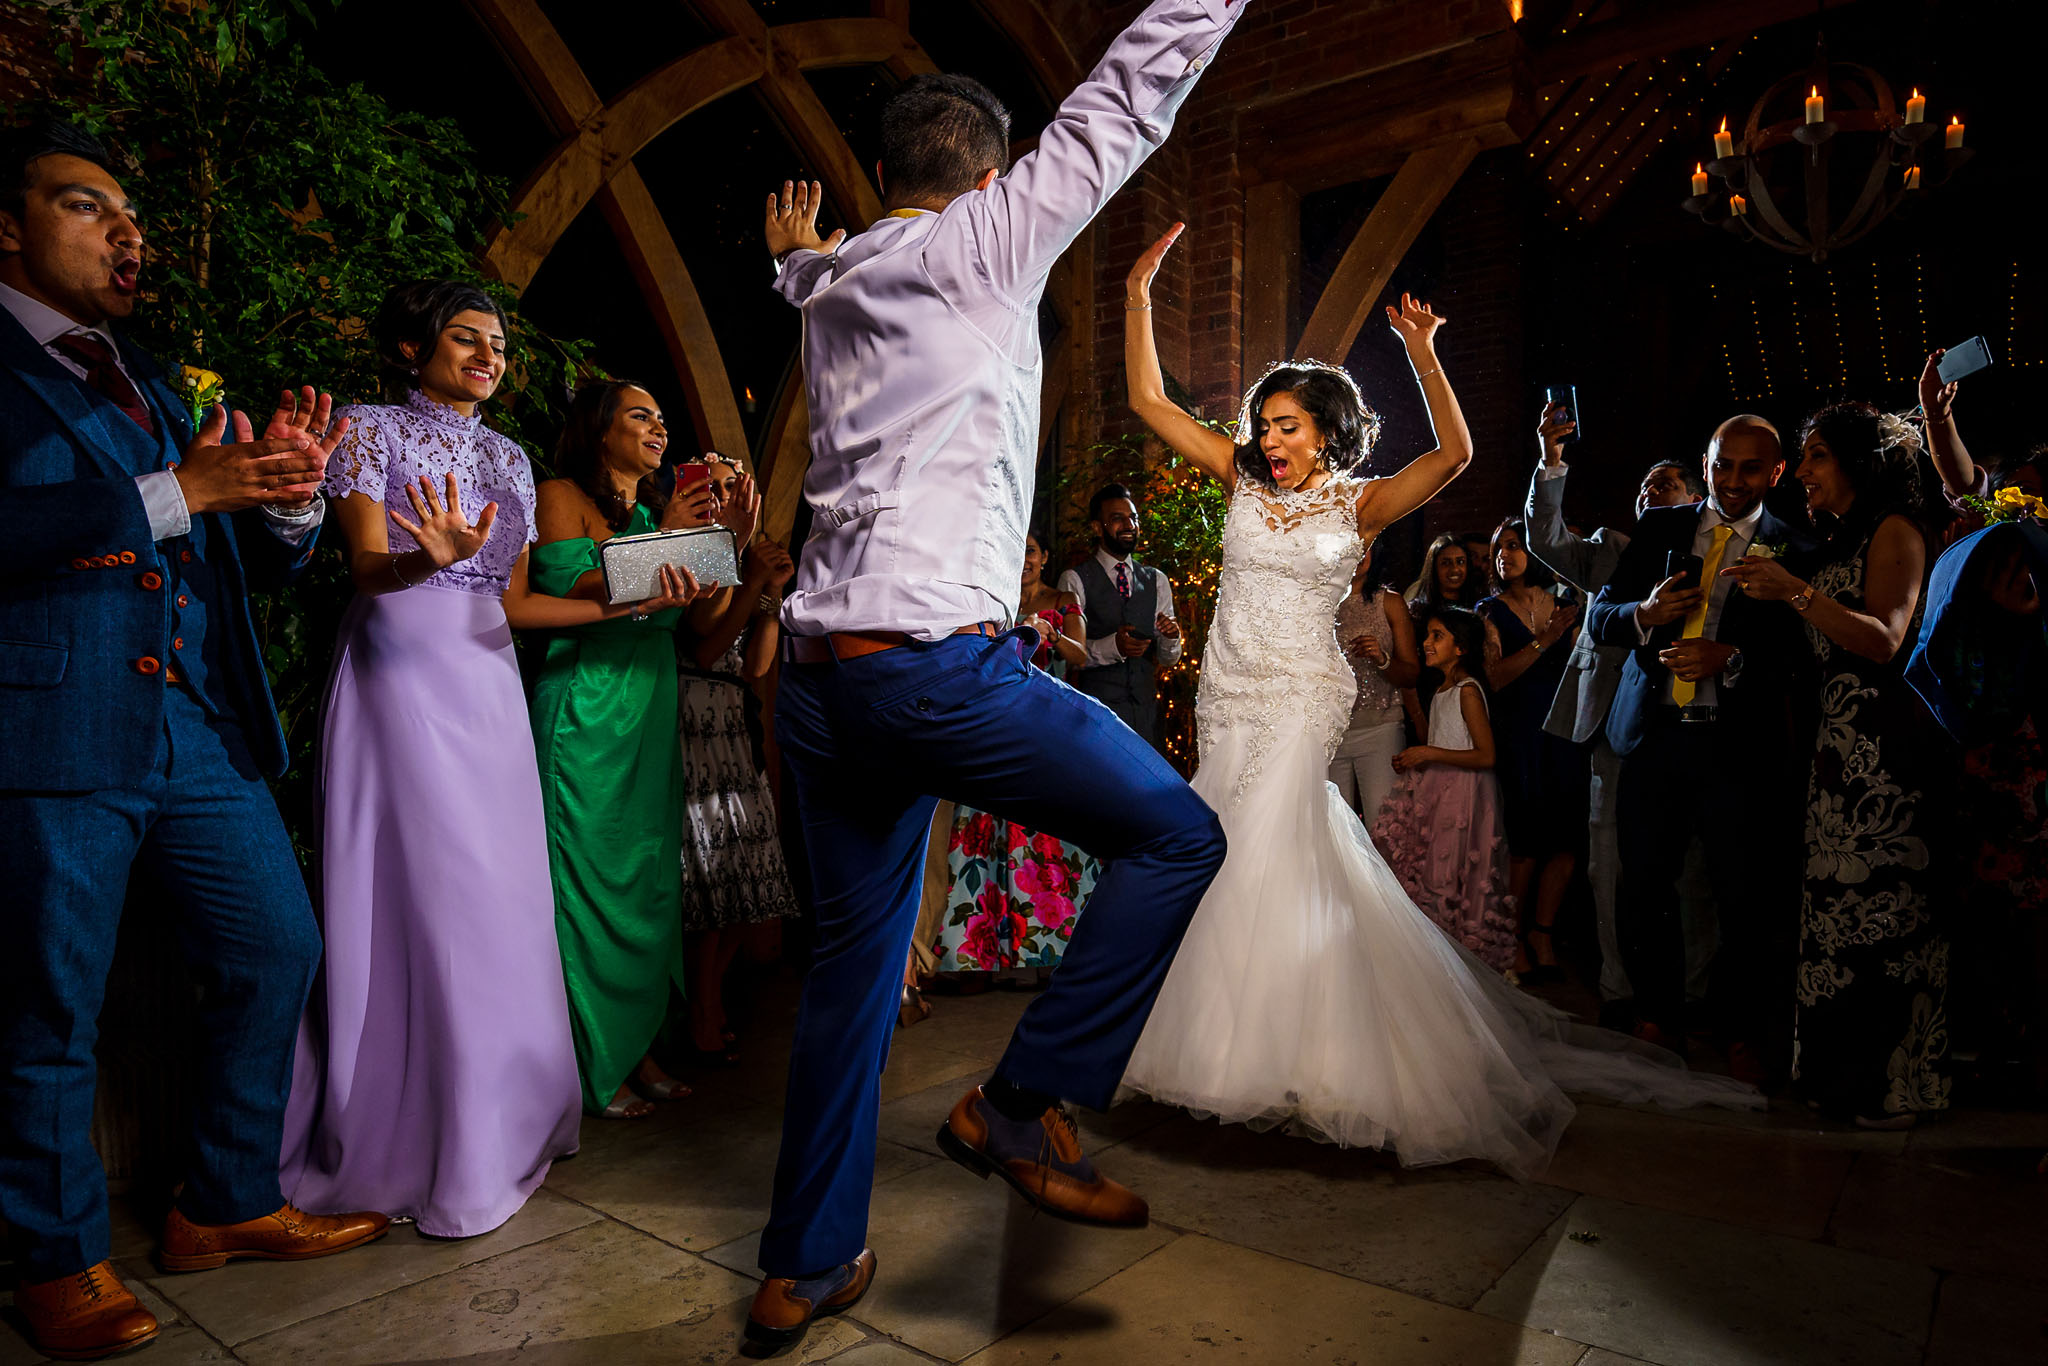 the bride and groom throwing some shapes on the dance floor